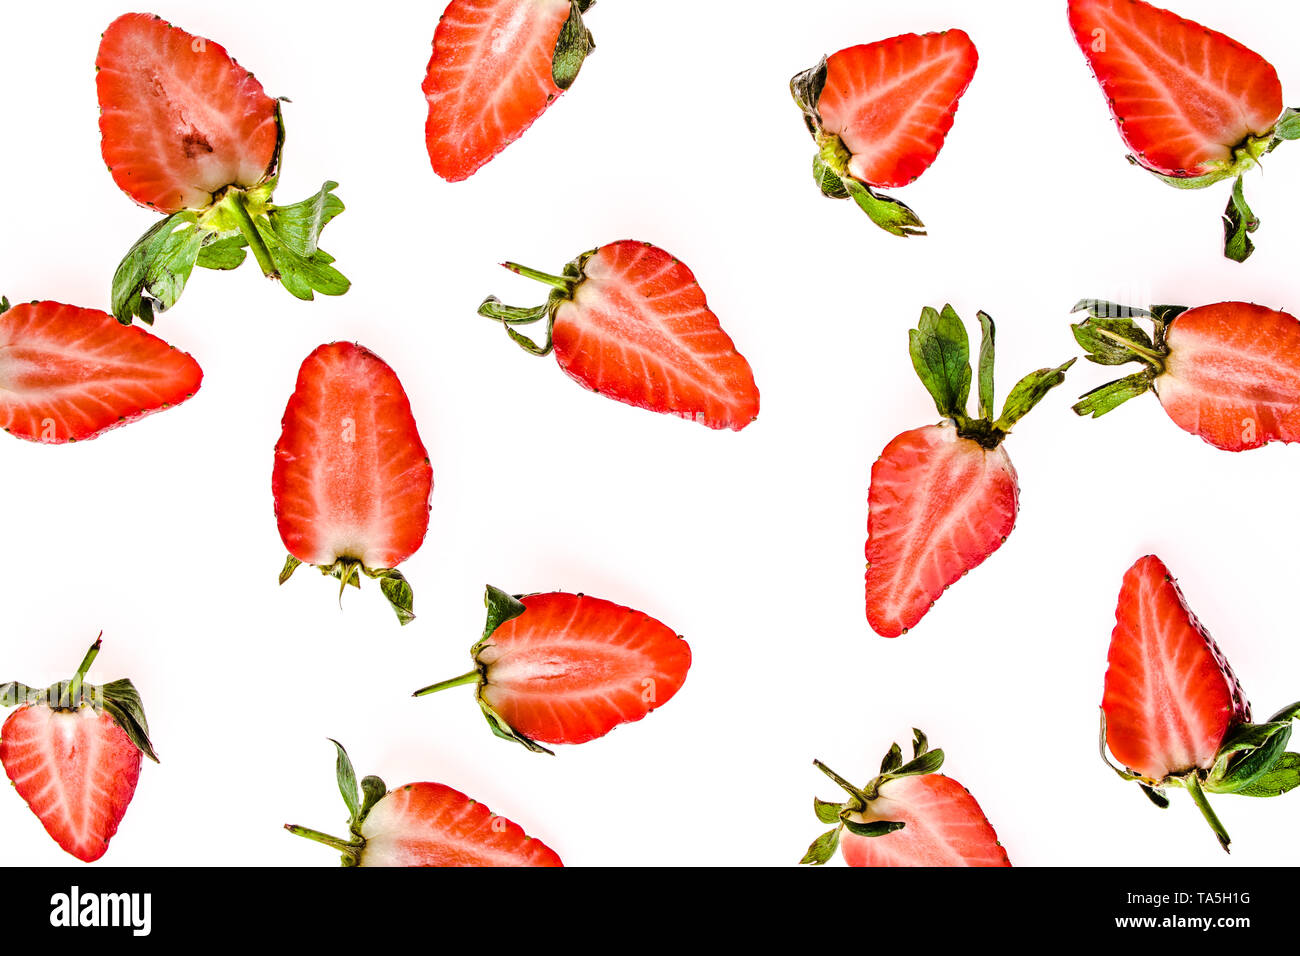 Fresh fruit pattern with strawberries, top view. Slices of strawberry isolated on white background. - Stock Image